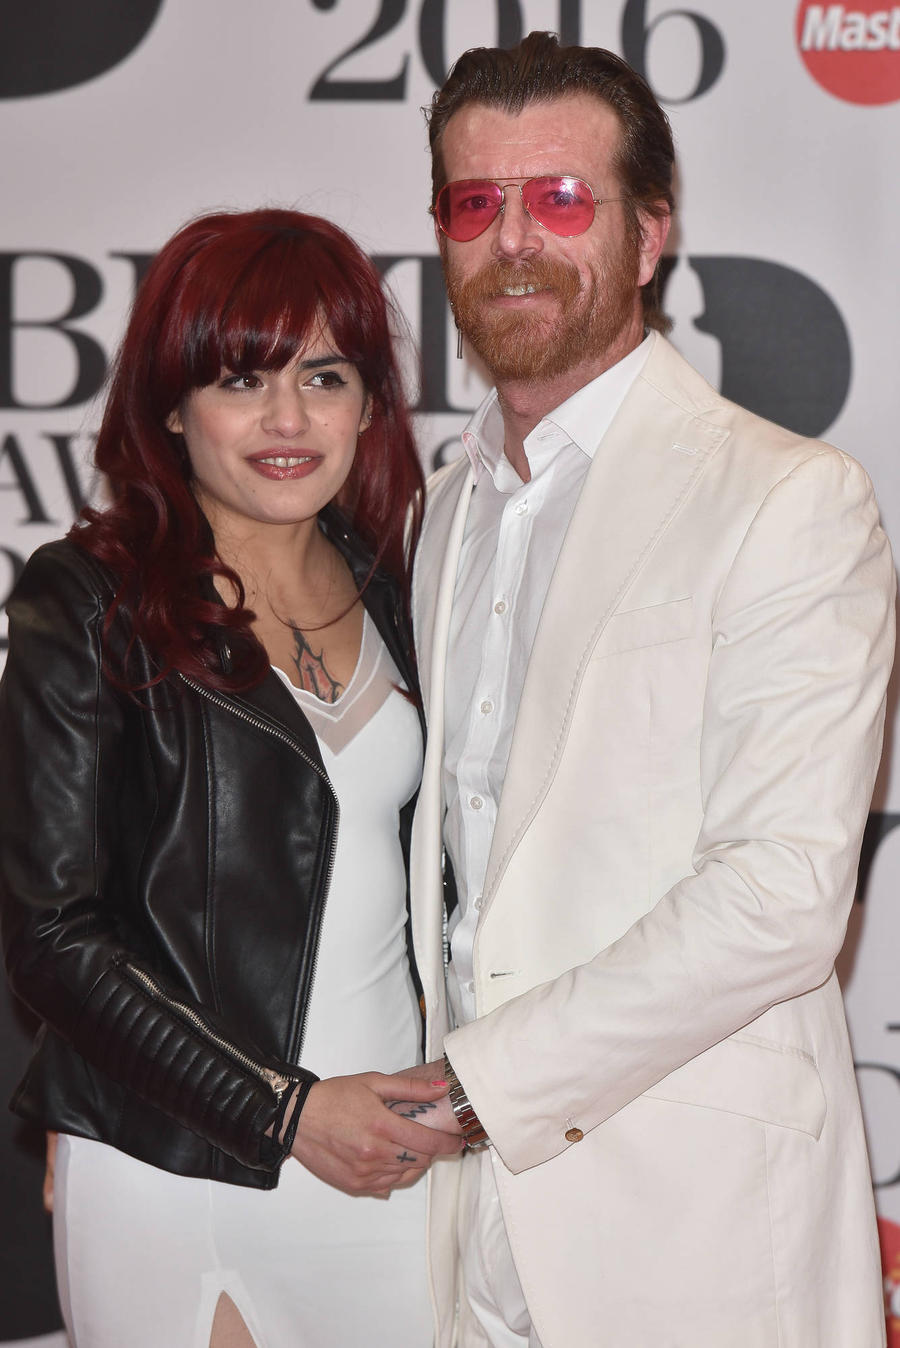 Jesse Hughes Proposes To Girlfriend At Australia Show